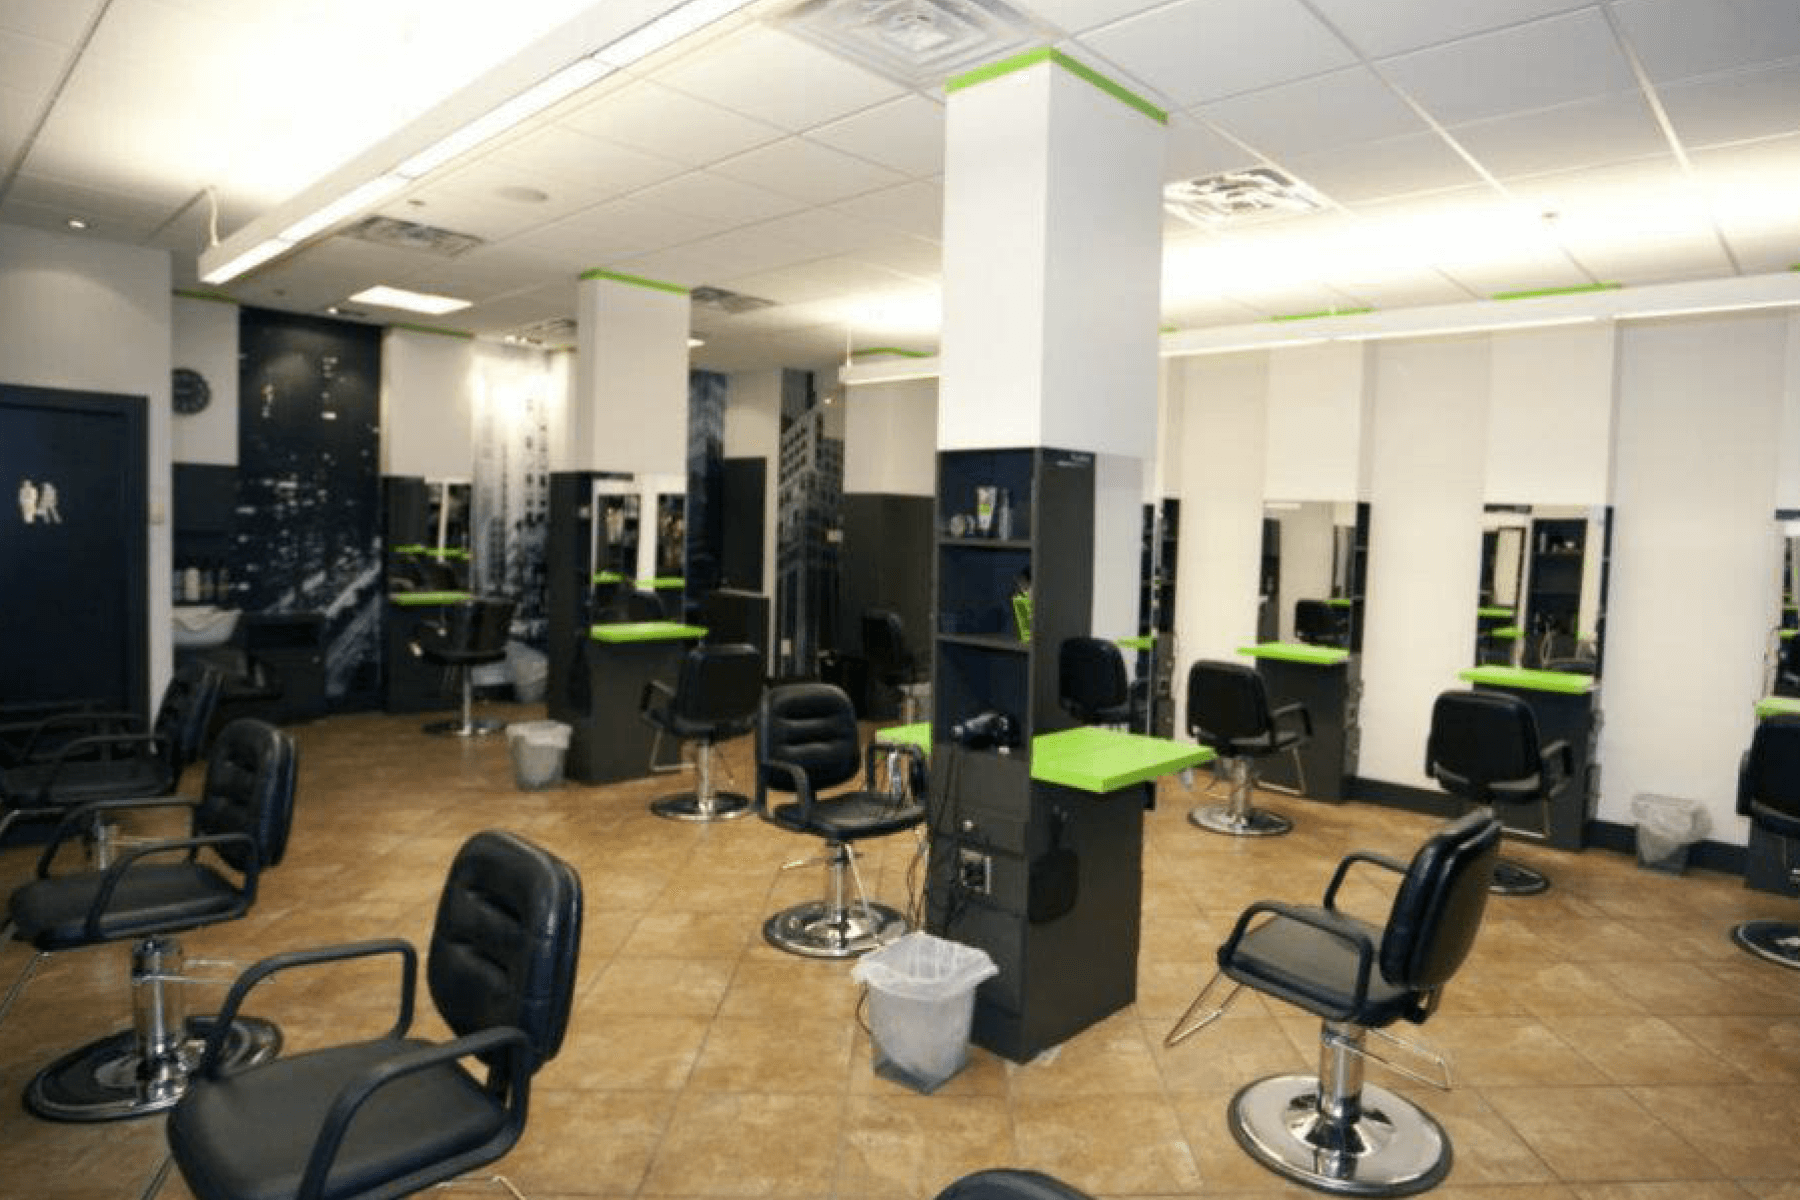 several salon chairs